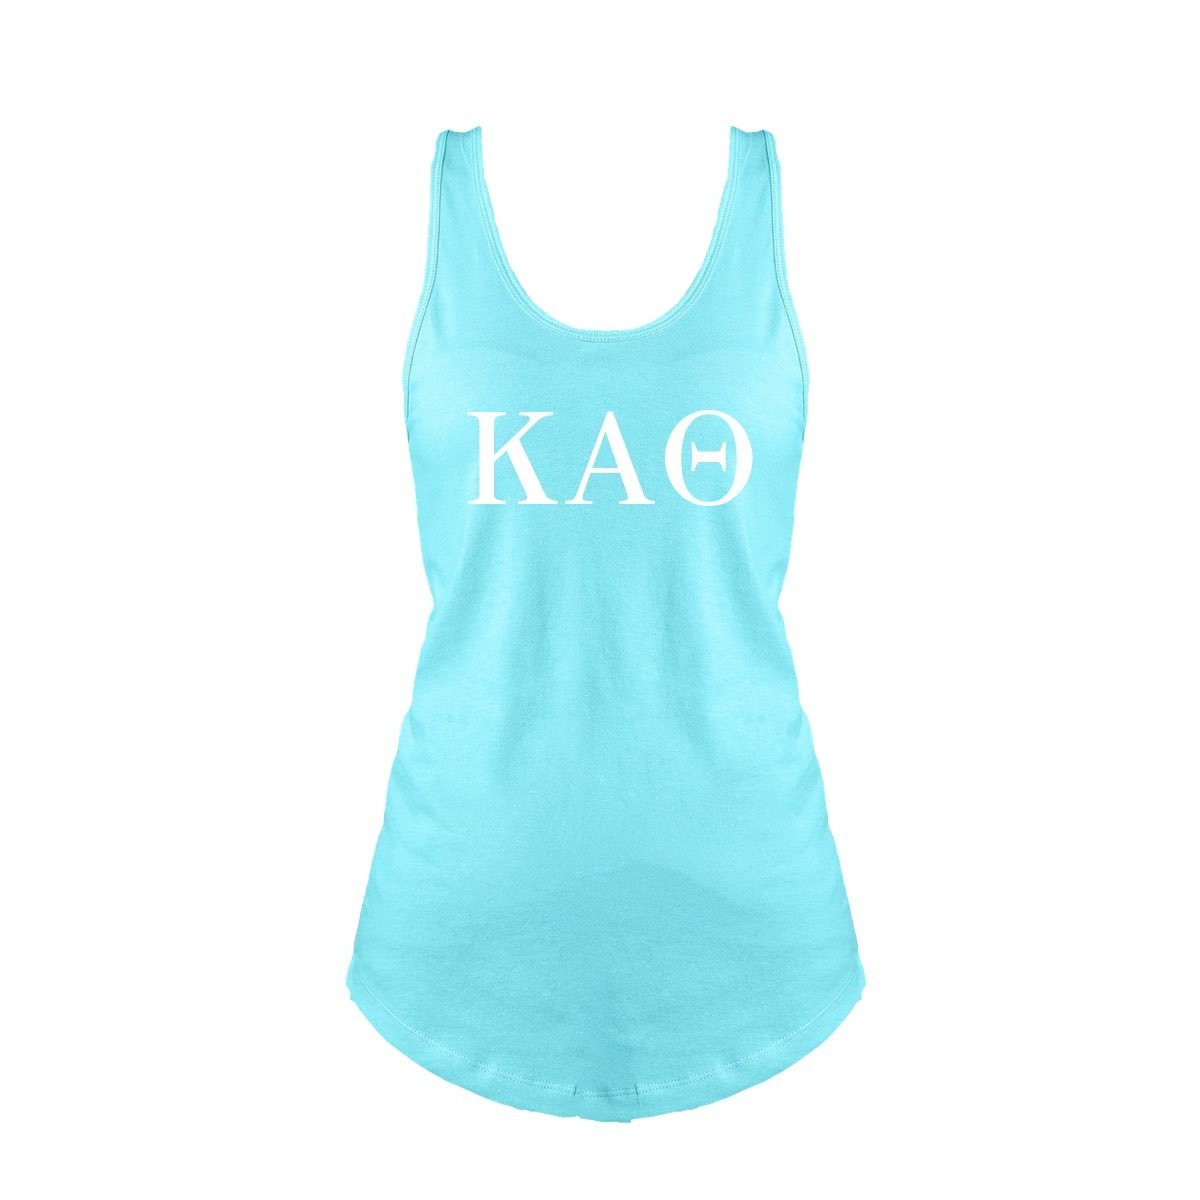 Aqua Kappa Alpha Theta Tank top with Large Greek Letters on front. Perfect sorority tank top for swimsuit coverup or oversized nightshirt.